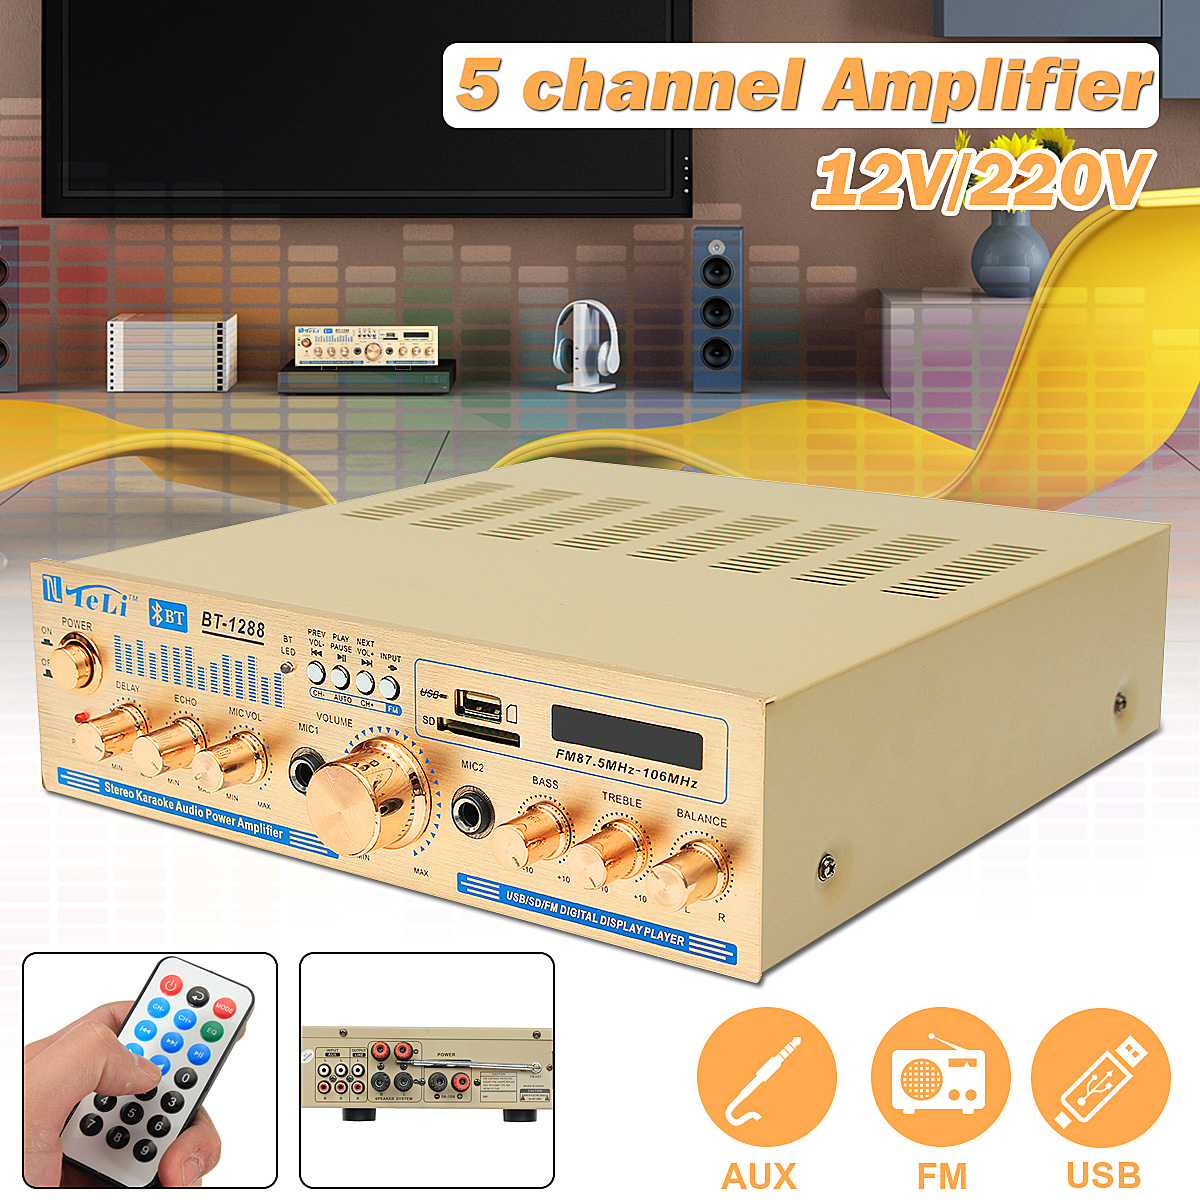 2*100w 12V/220V 2 Channel Equalizer Bluetooth Home Stereo Power Amplifier USB Car Amplifier Home Theater Amplifiers Audio 3800w 4 channel equalizer home stereo power amplifier usb car amplifier home theater amplifiers audio